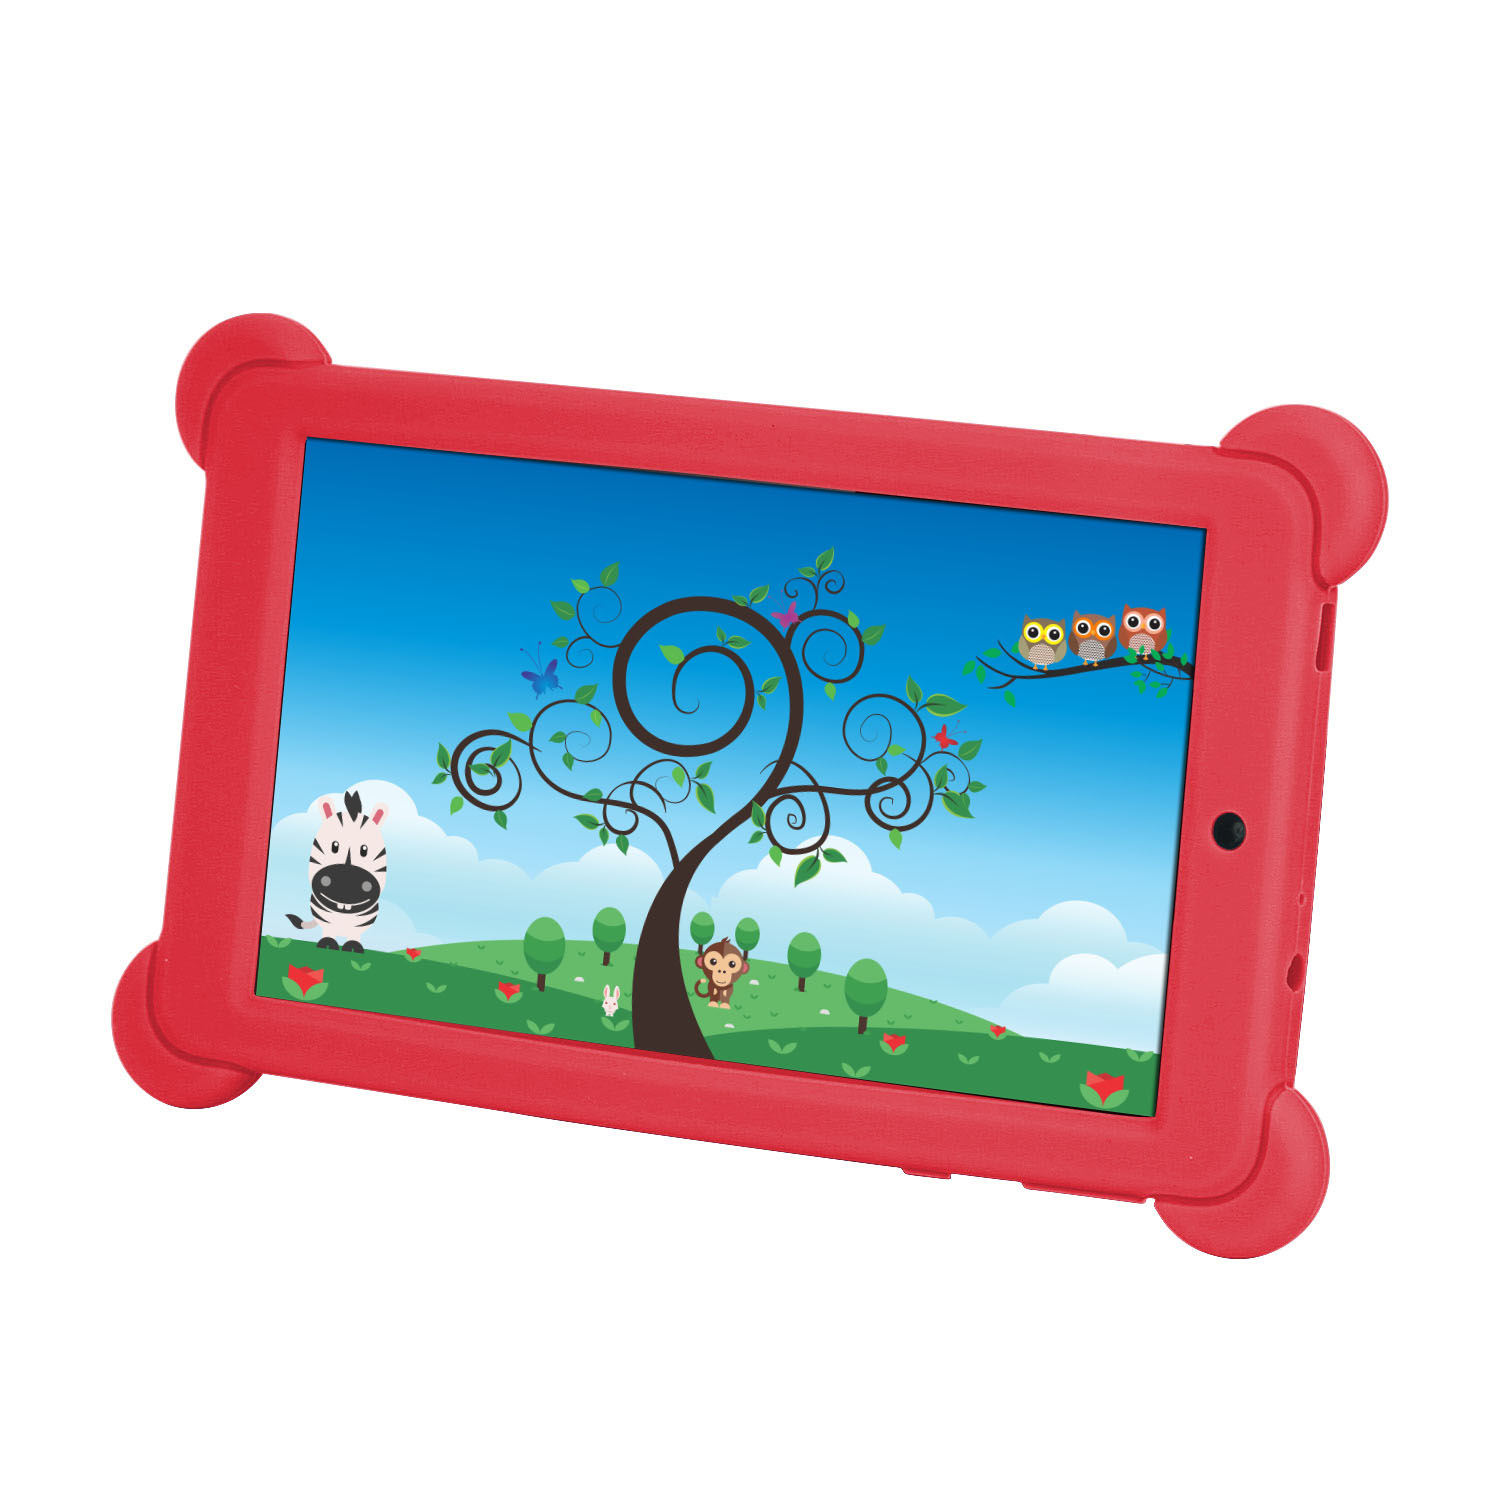 KOCASO 7-Inch Dual Camera WiFi Quad Core Kids Tablet (Red)